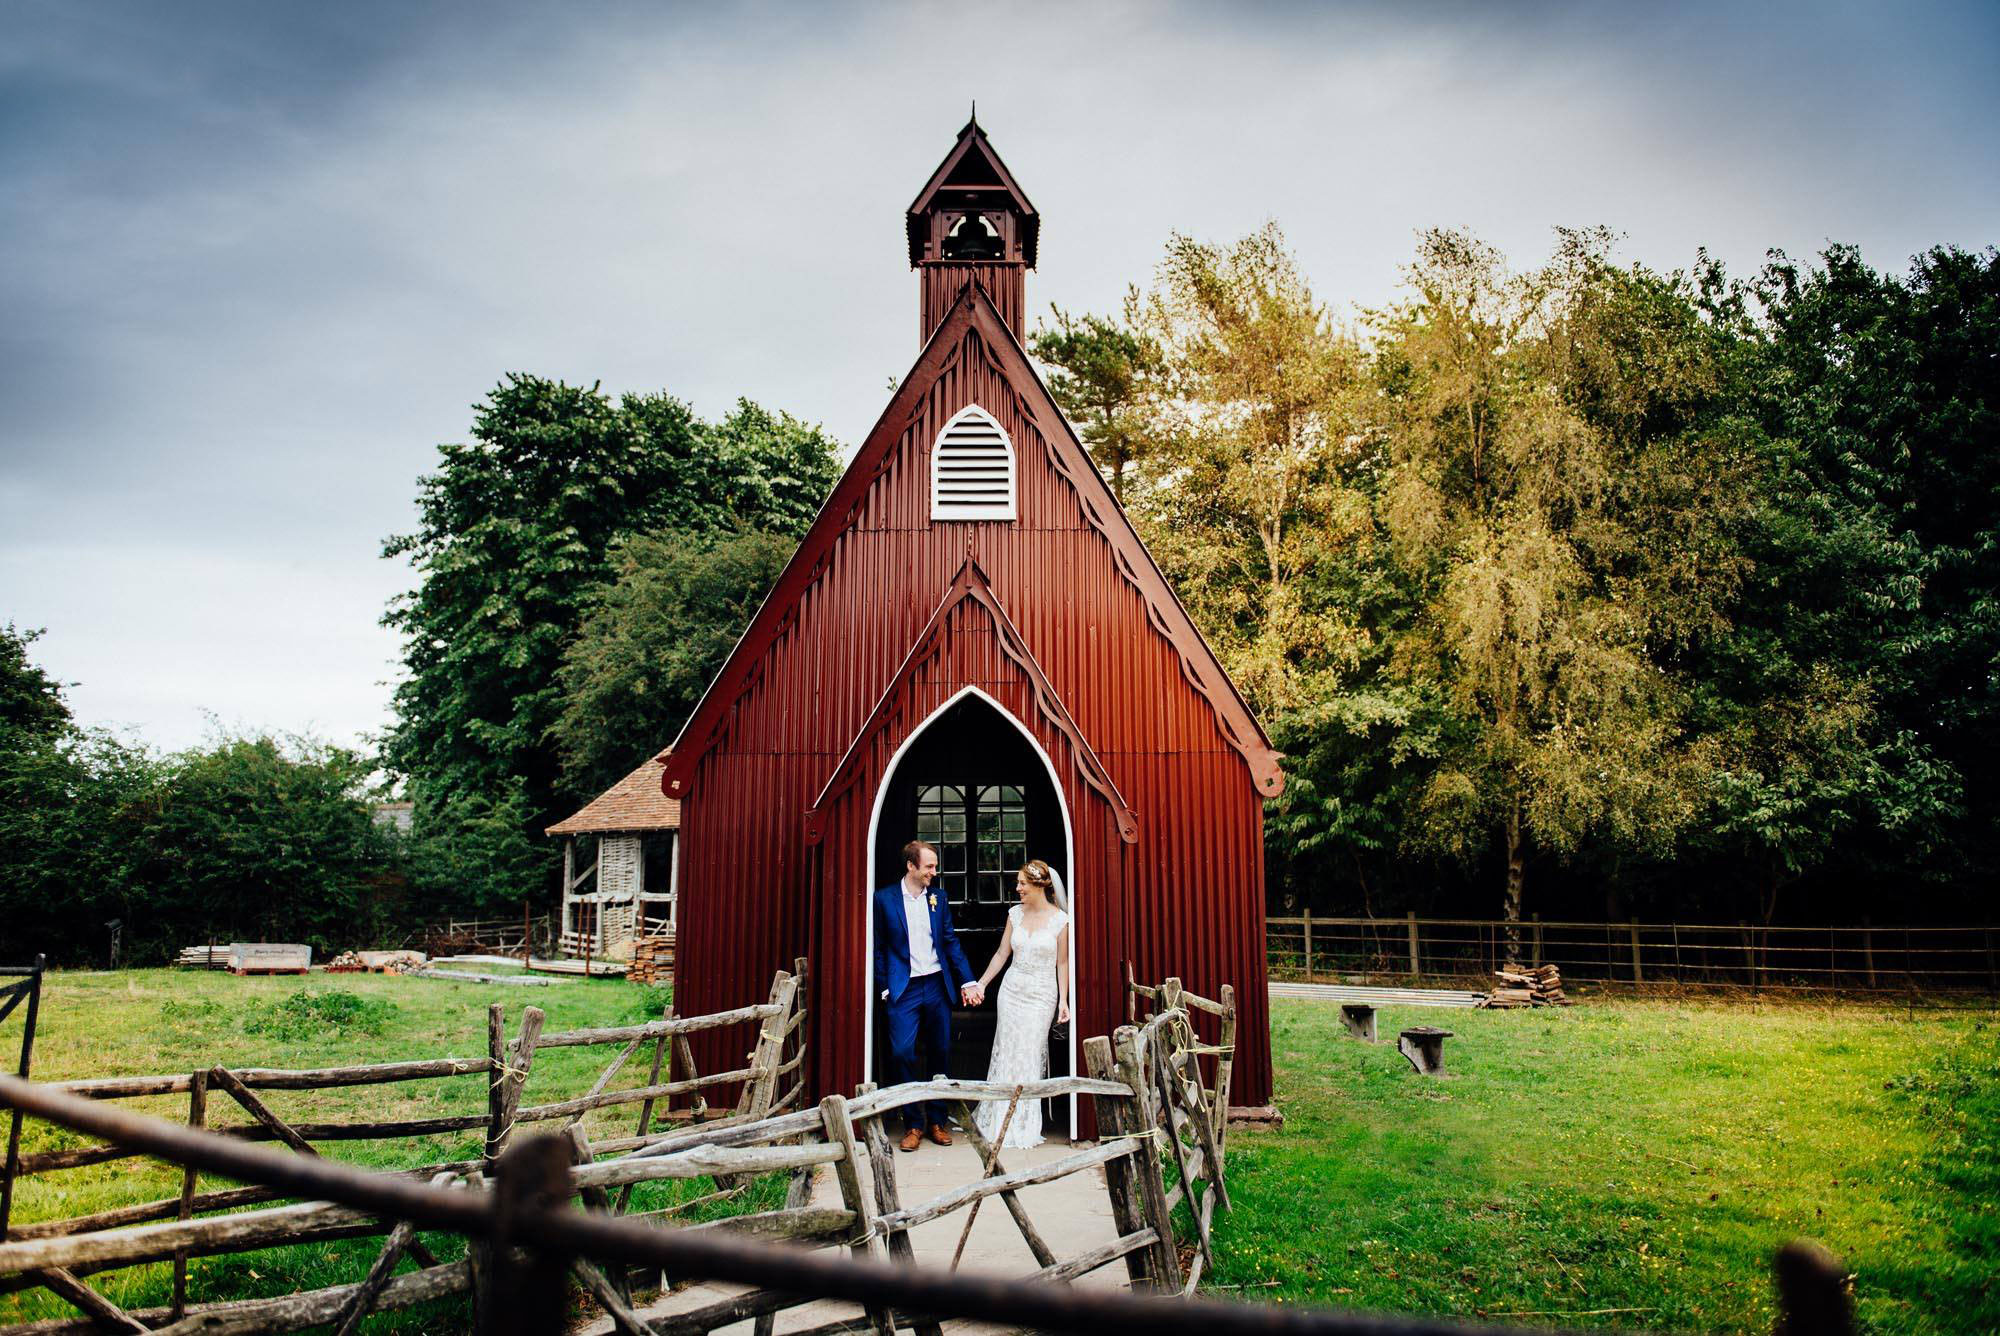 Chiltern Open Air Museum, Buckinghamshire wedding photography - Joely and Oli